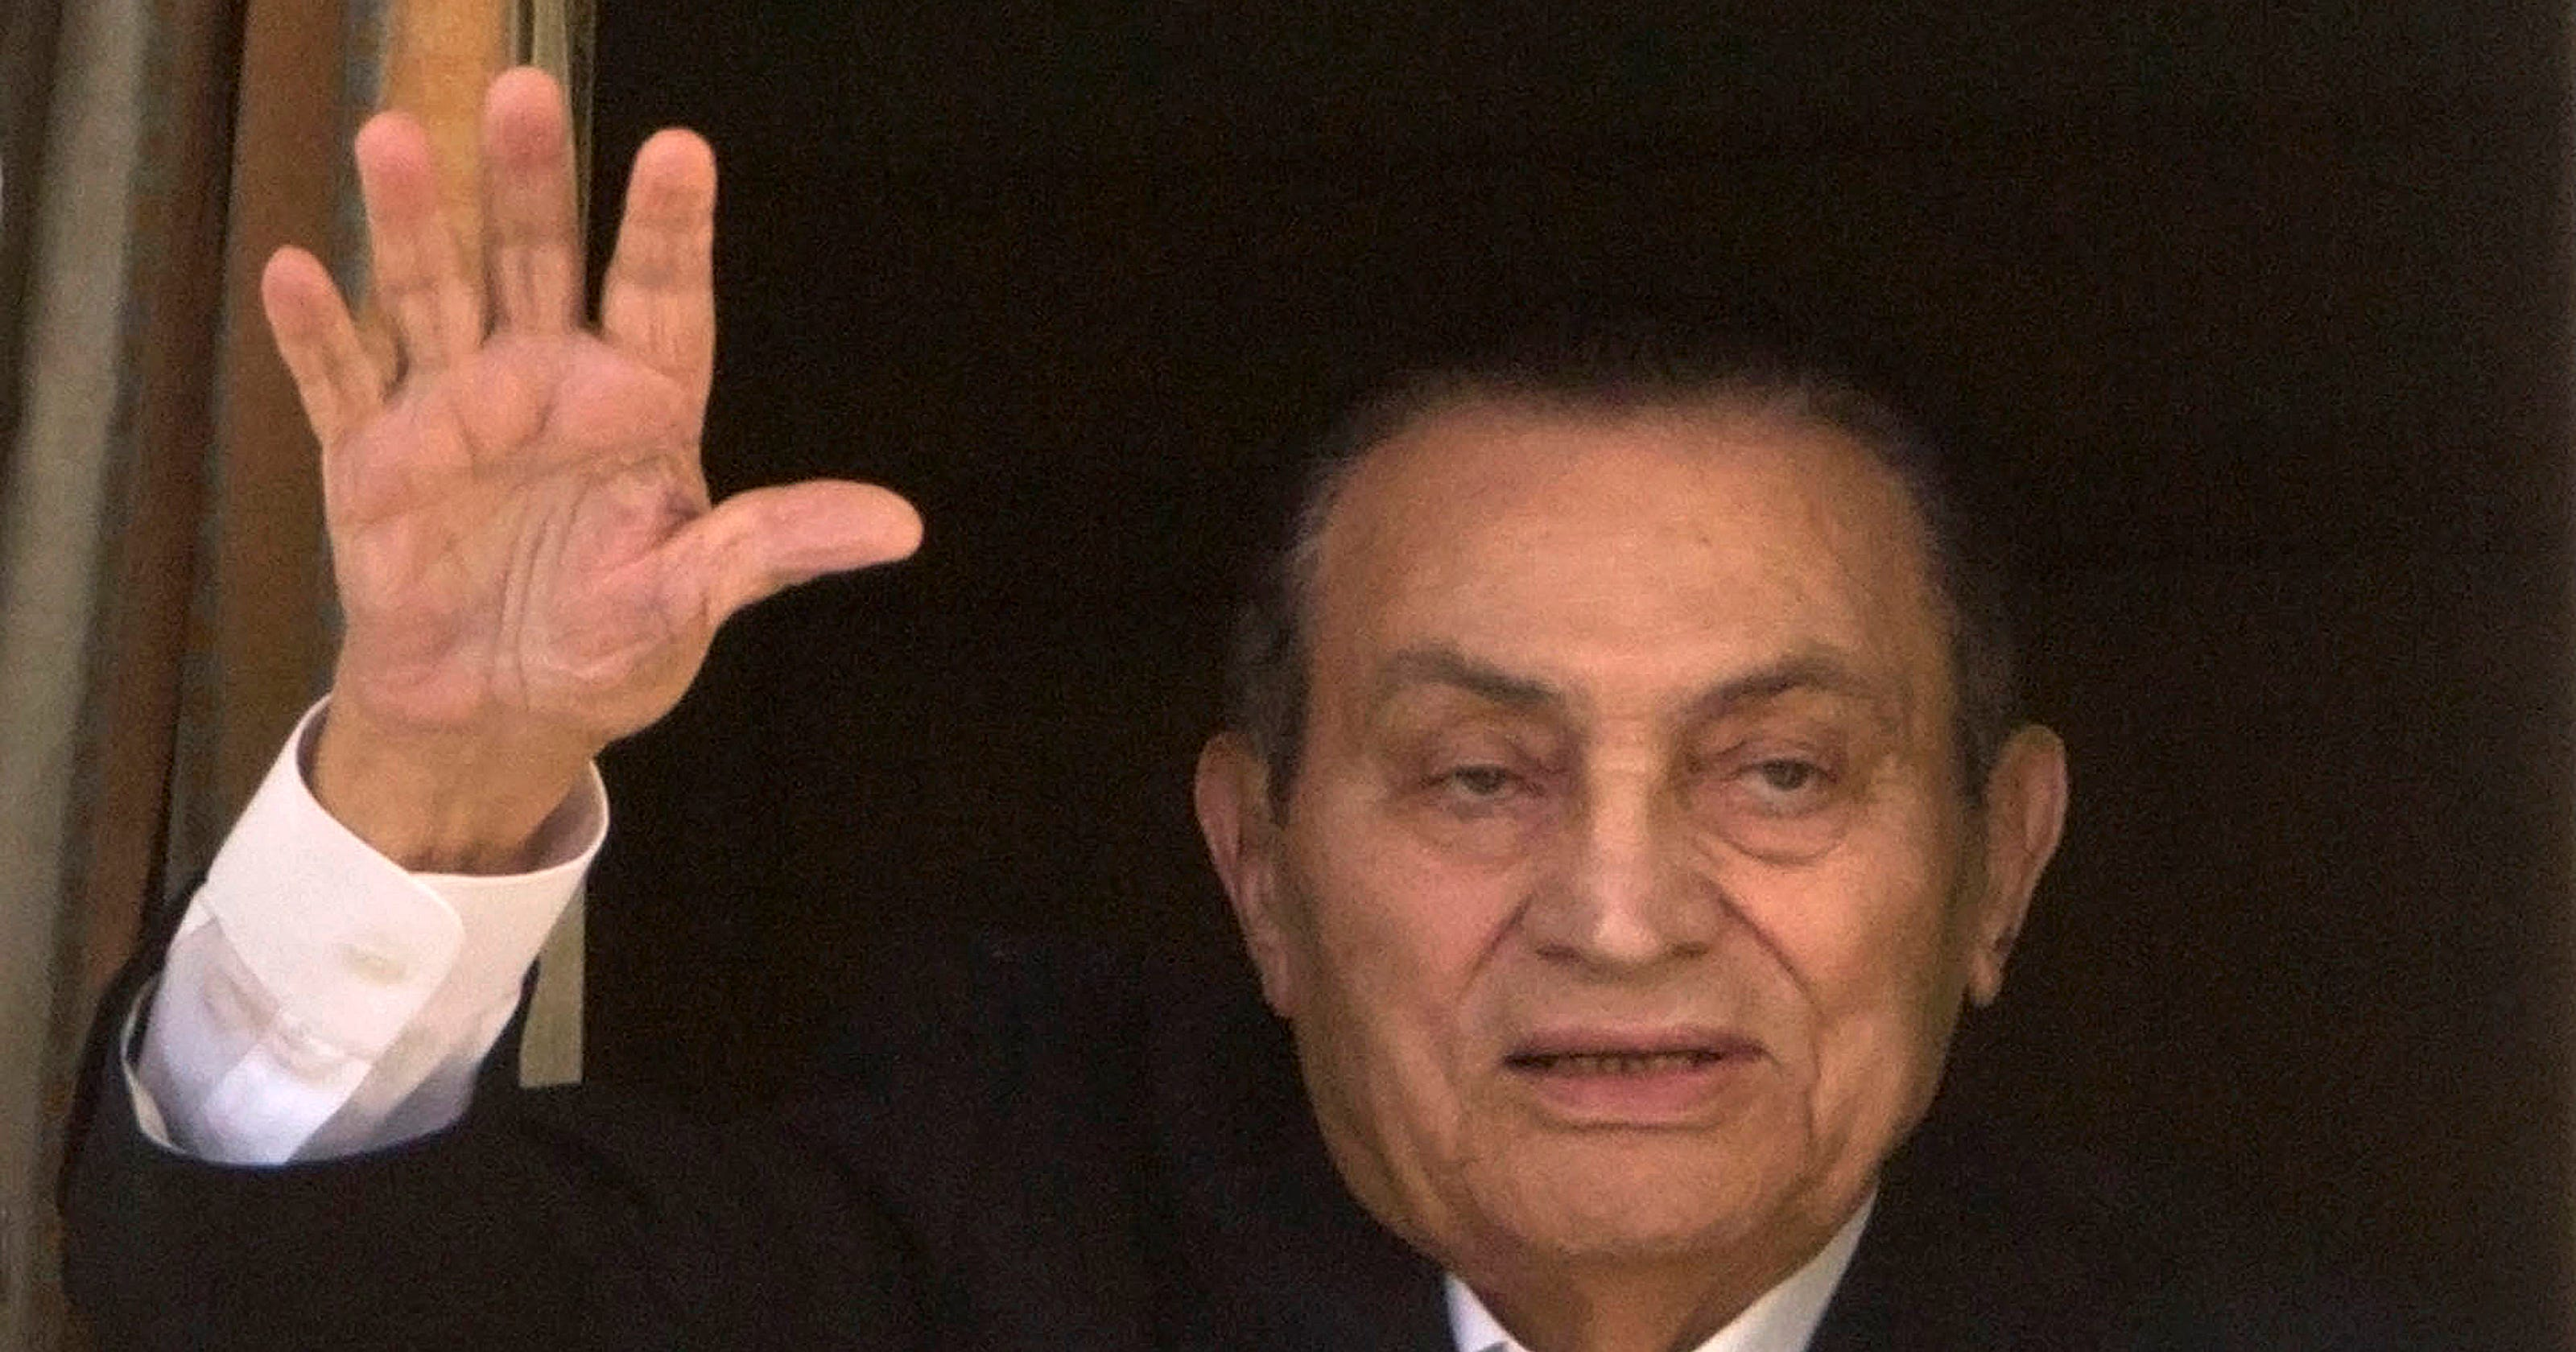 hosni mubarak freed from detention egypt official says